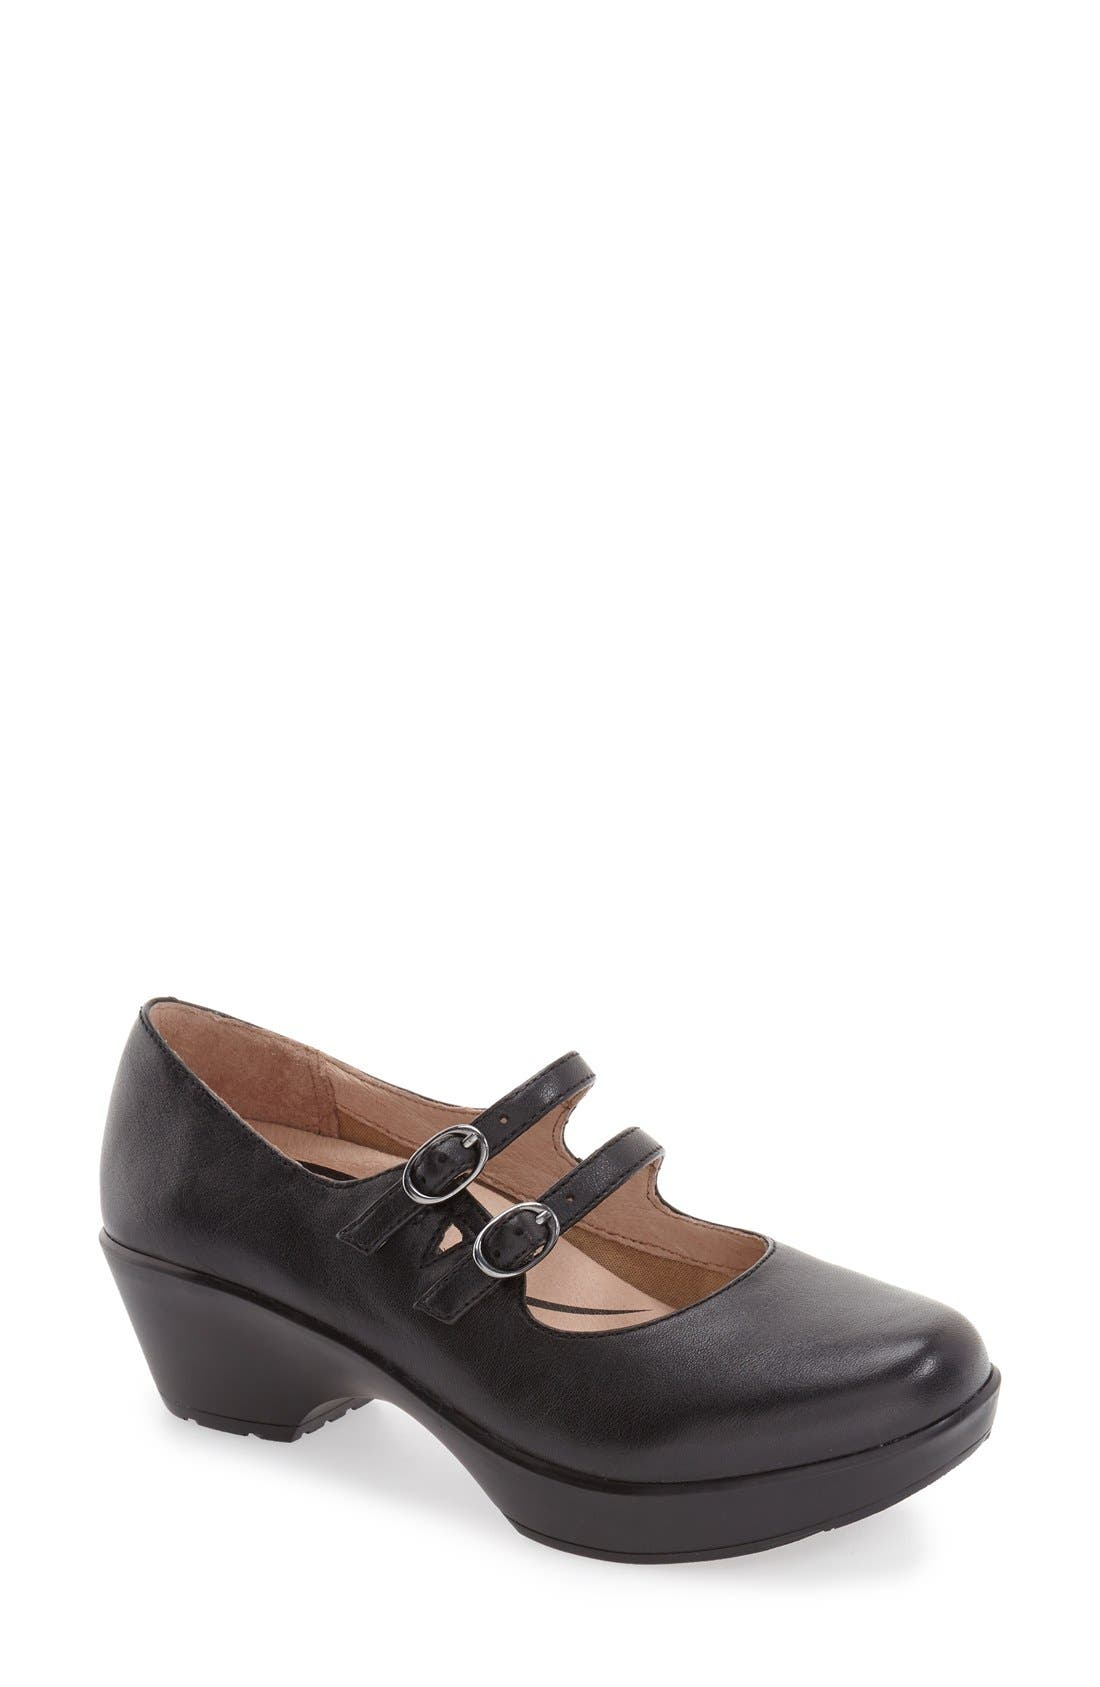 Dansko 'Josie' Mary Jane Pump (Women)